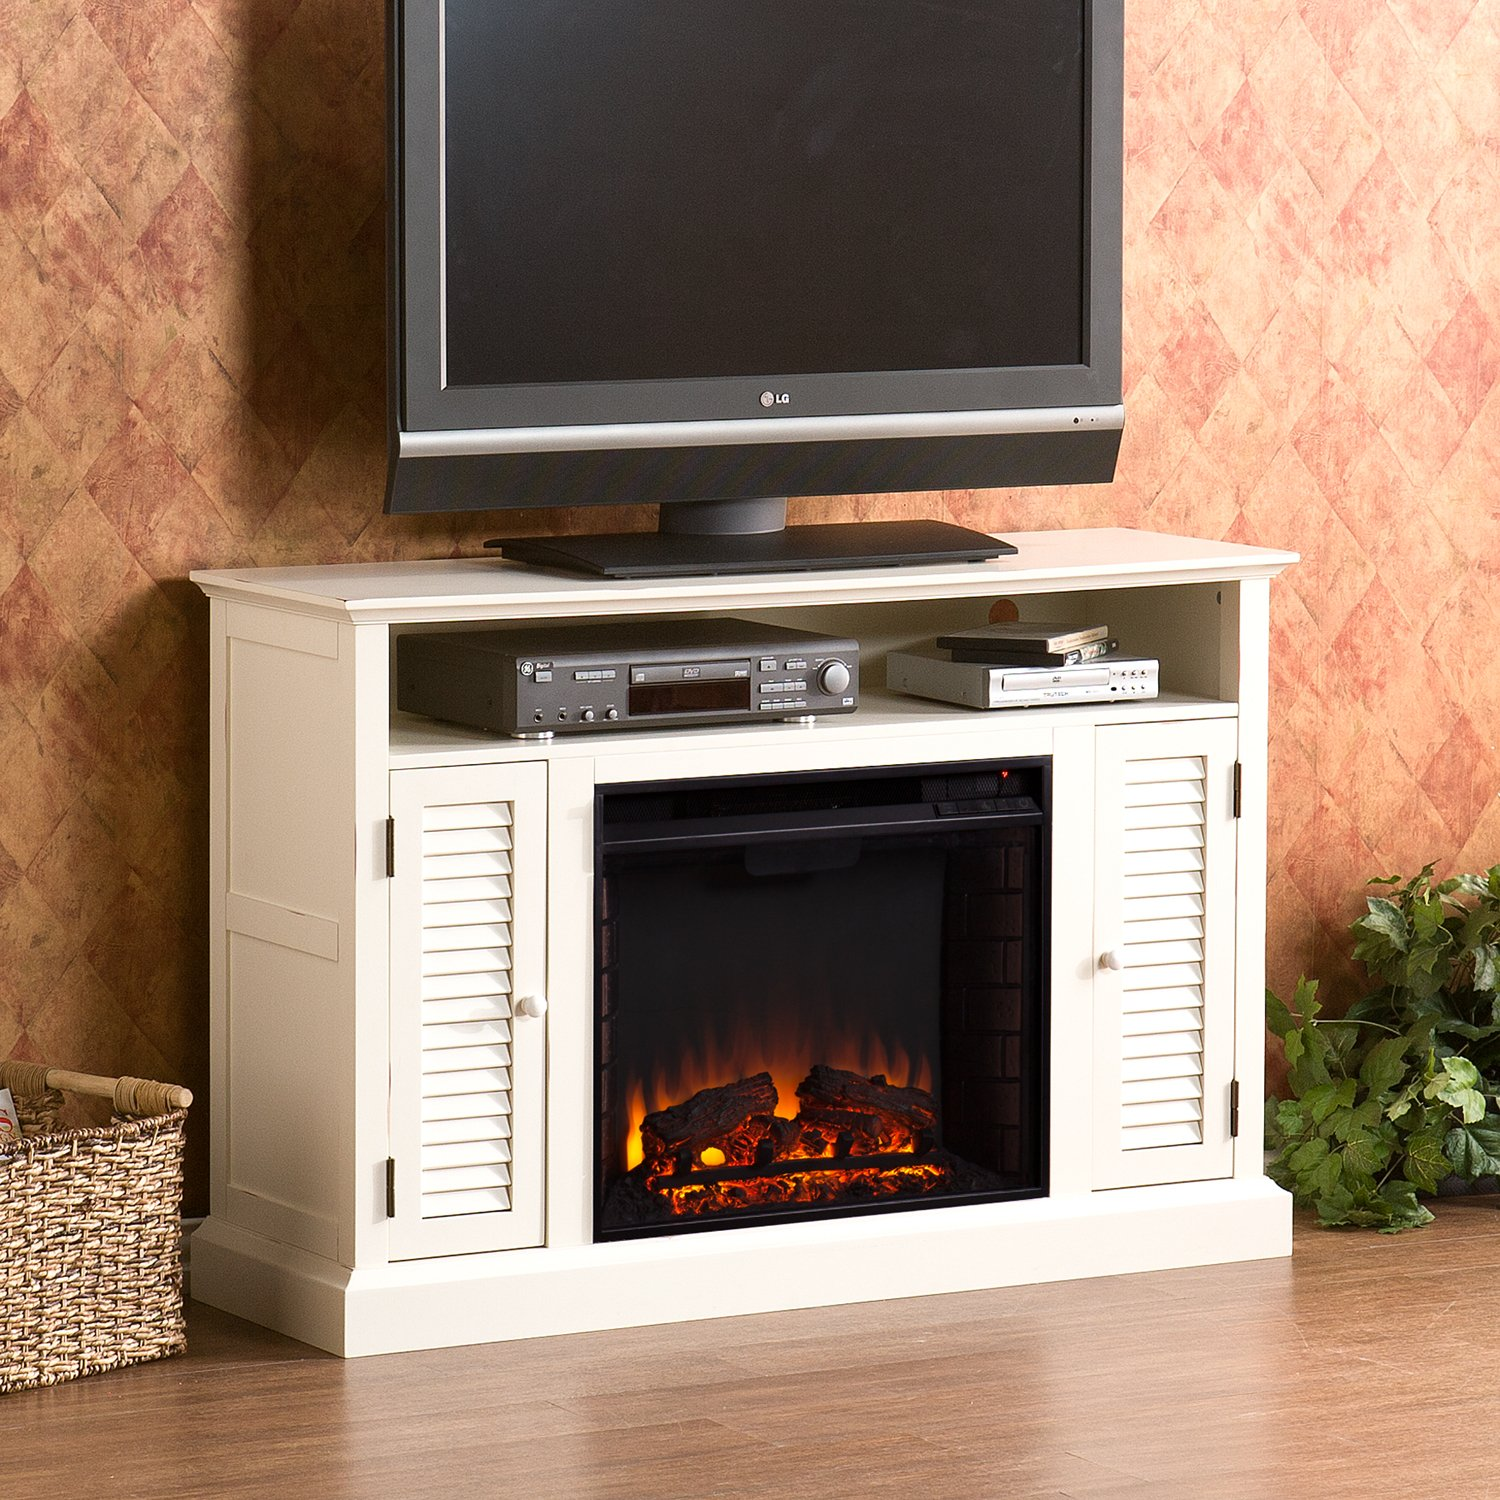 TV Media Stand Console - White: Kitchen & Dining